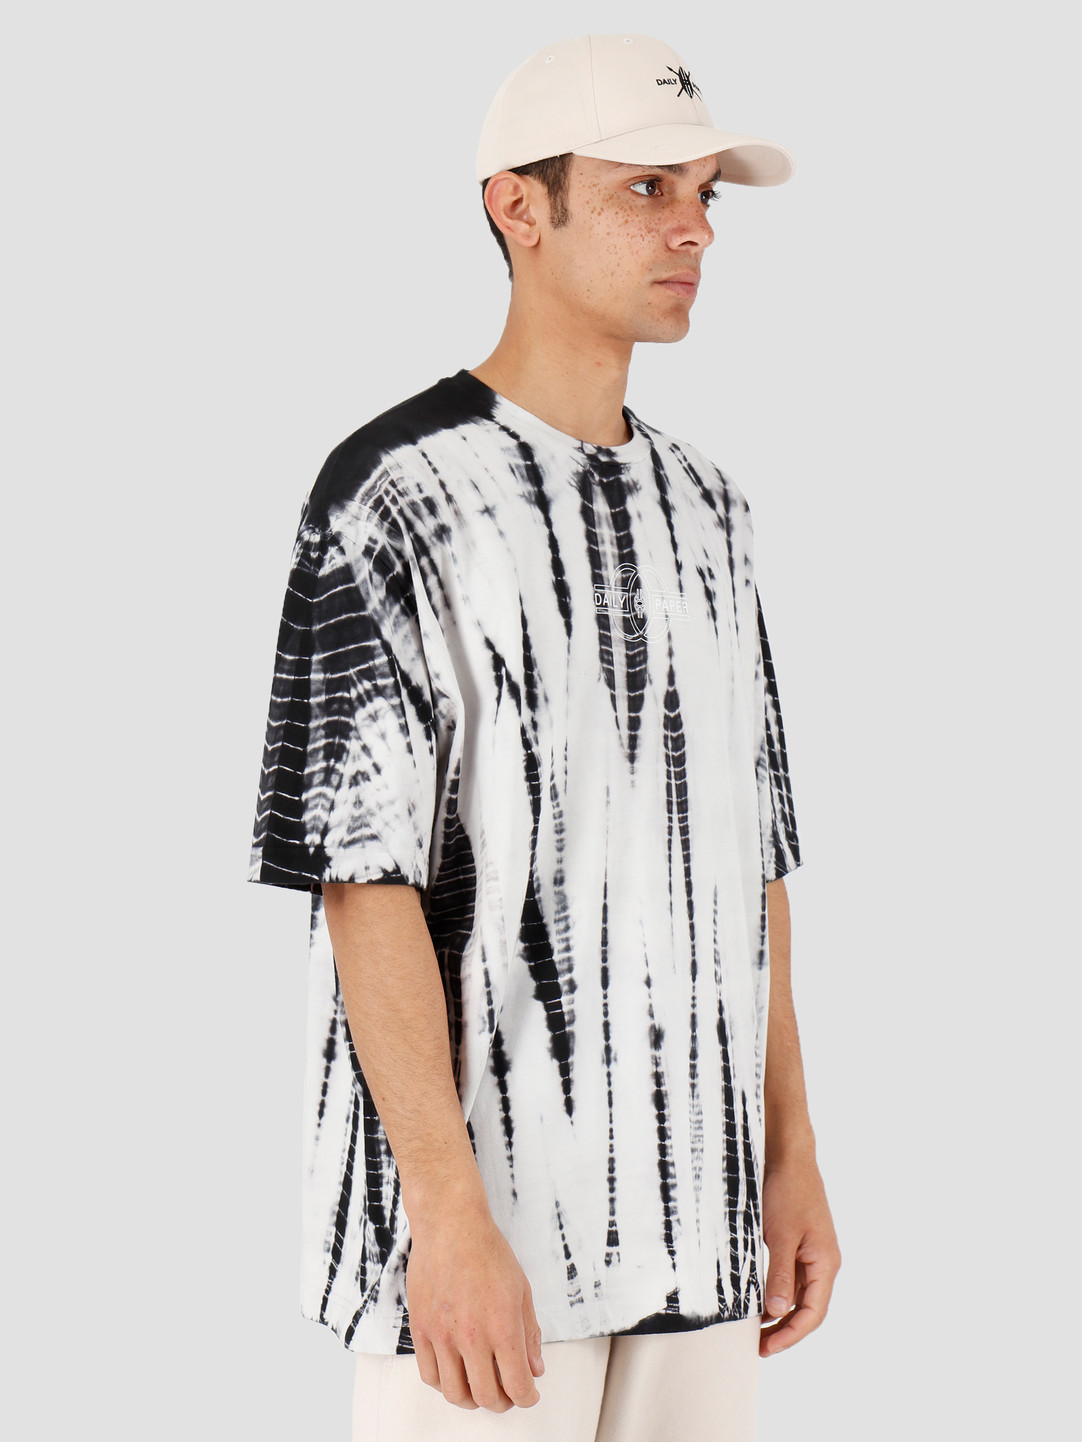 Daily Paper Daily Paper Henshi Top Black Shibori 20S1TO14-01